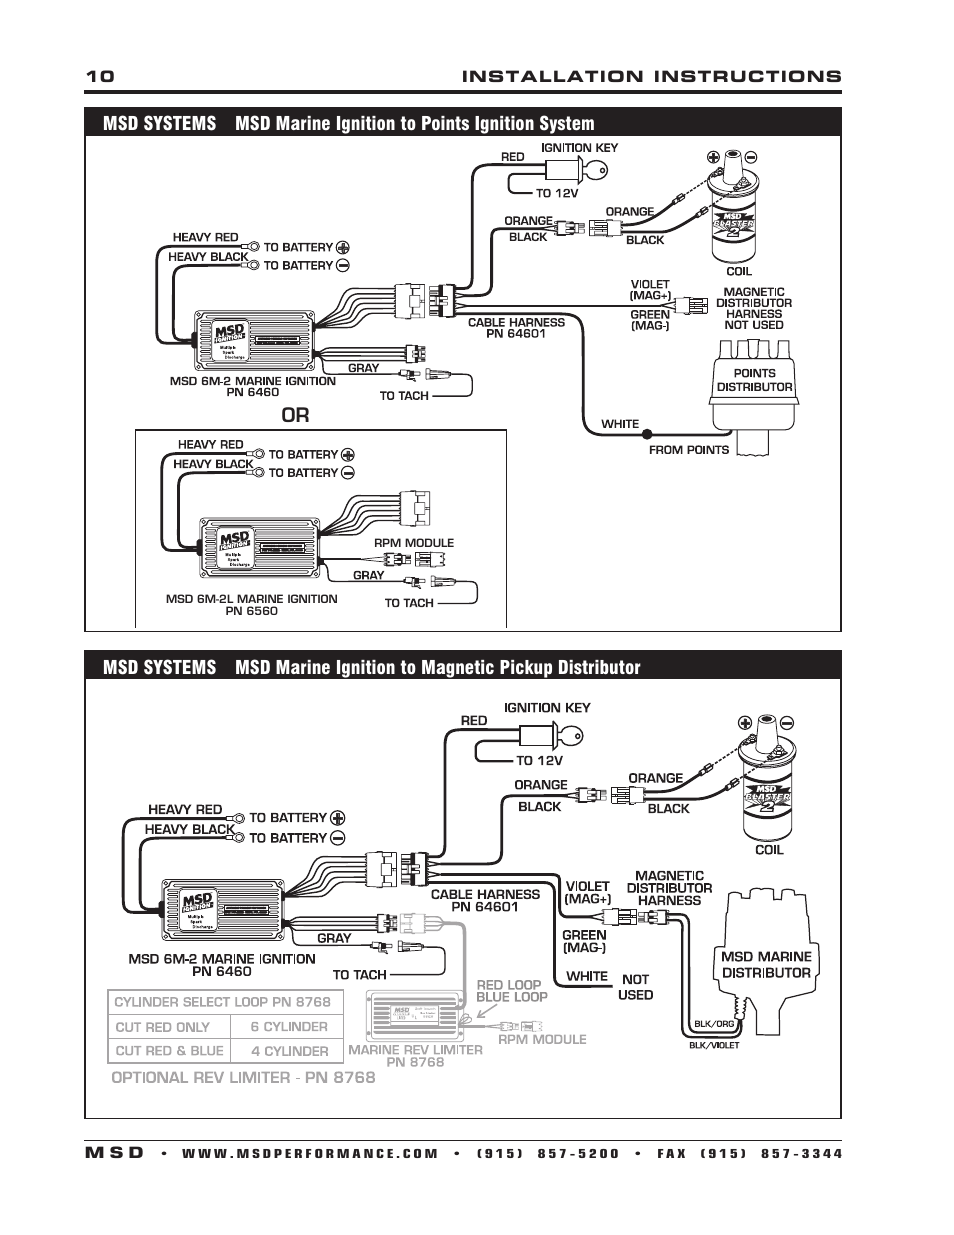 msd wiring diagram 280zx msd 6560 6m-2l marine certified ignition with rev limit ...